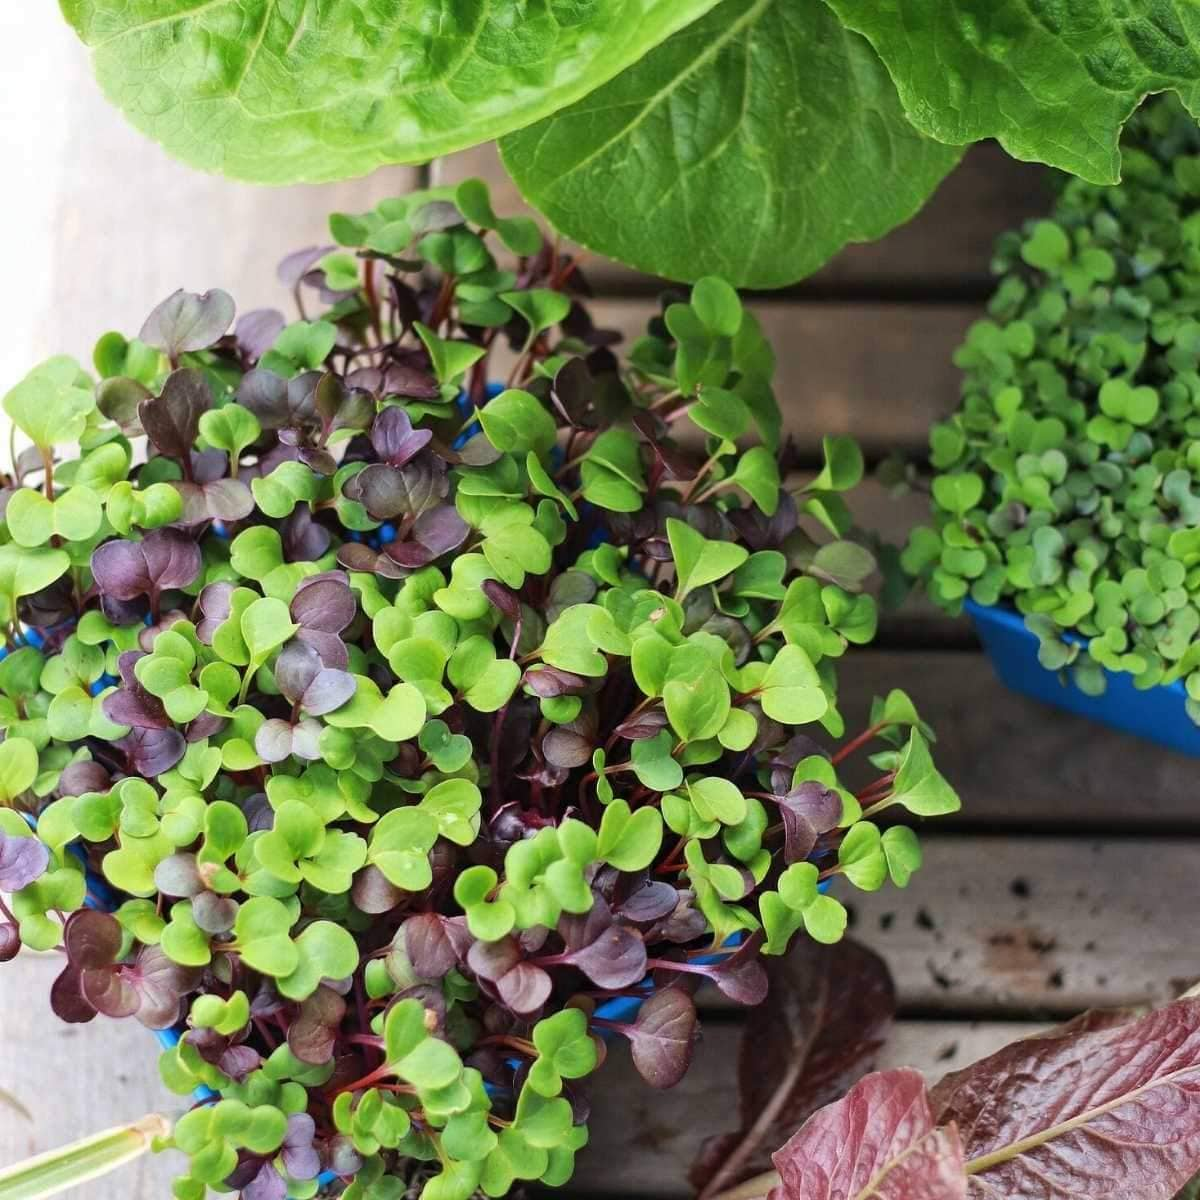 Microgreens- How to Combat and Prevent Mold